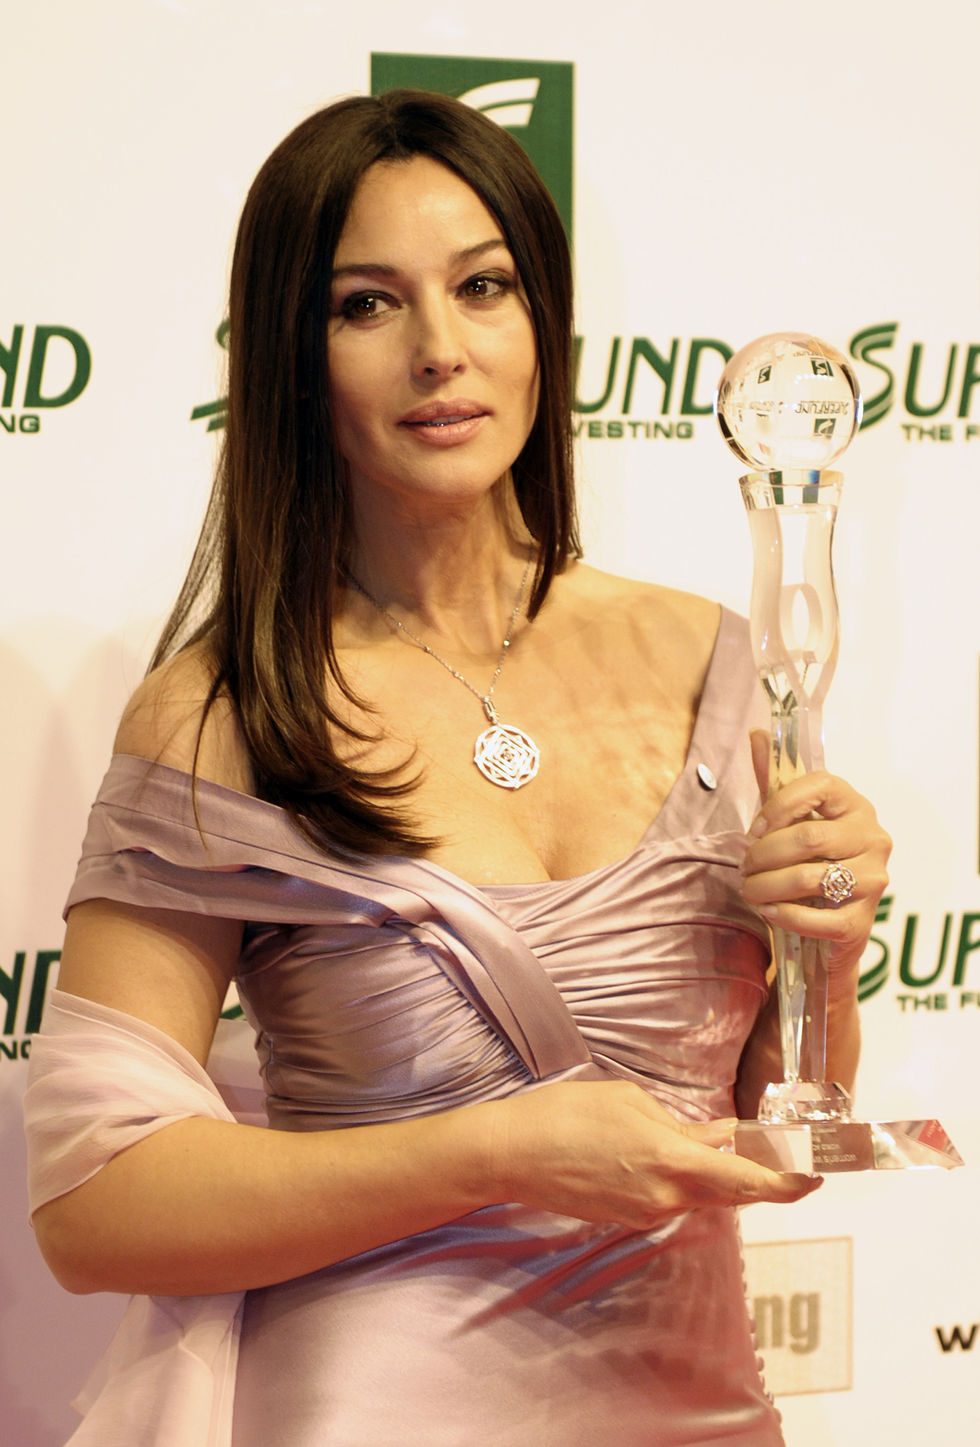 monica-bellucci-womens-world-awards-gala-in-vienna-01